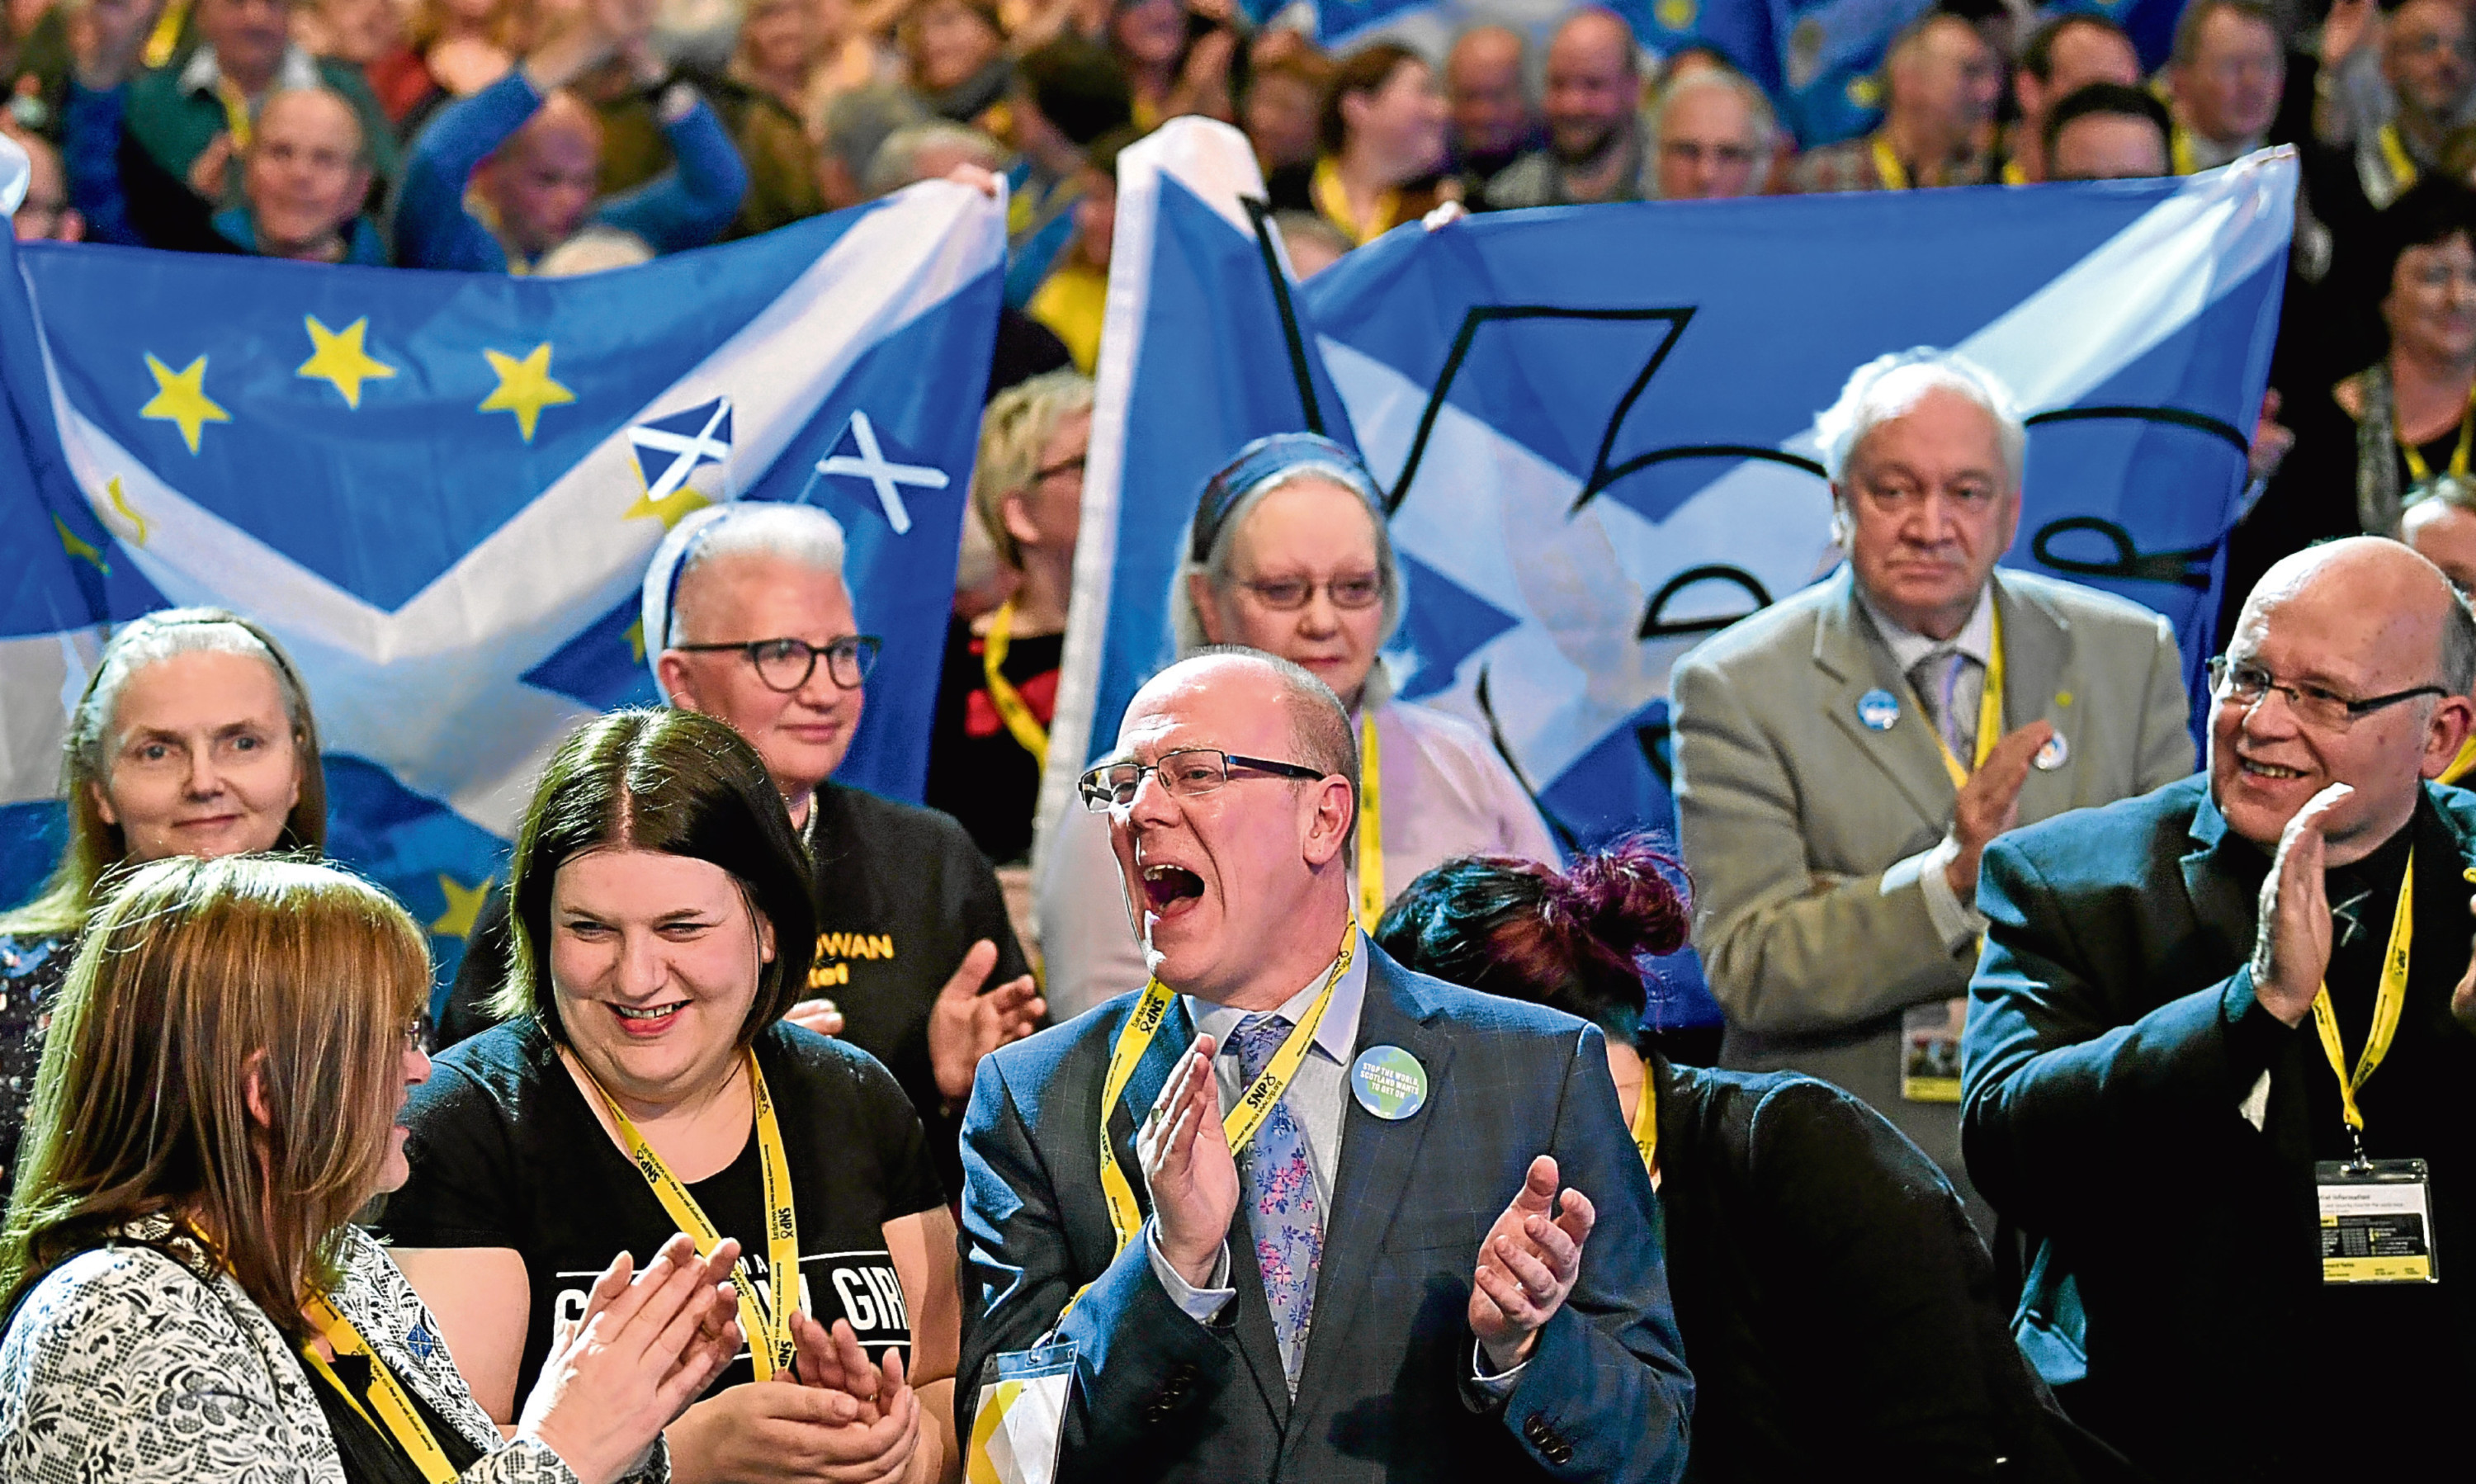 The SNP conference in Aberdeen last year. There will be no discussion on the Growth Commission report in main debate programme at this year's event.